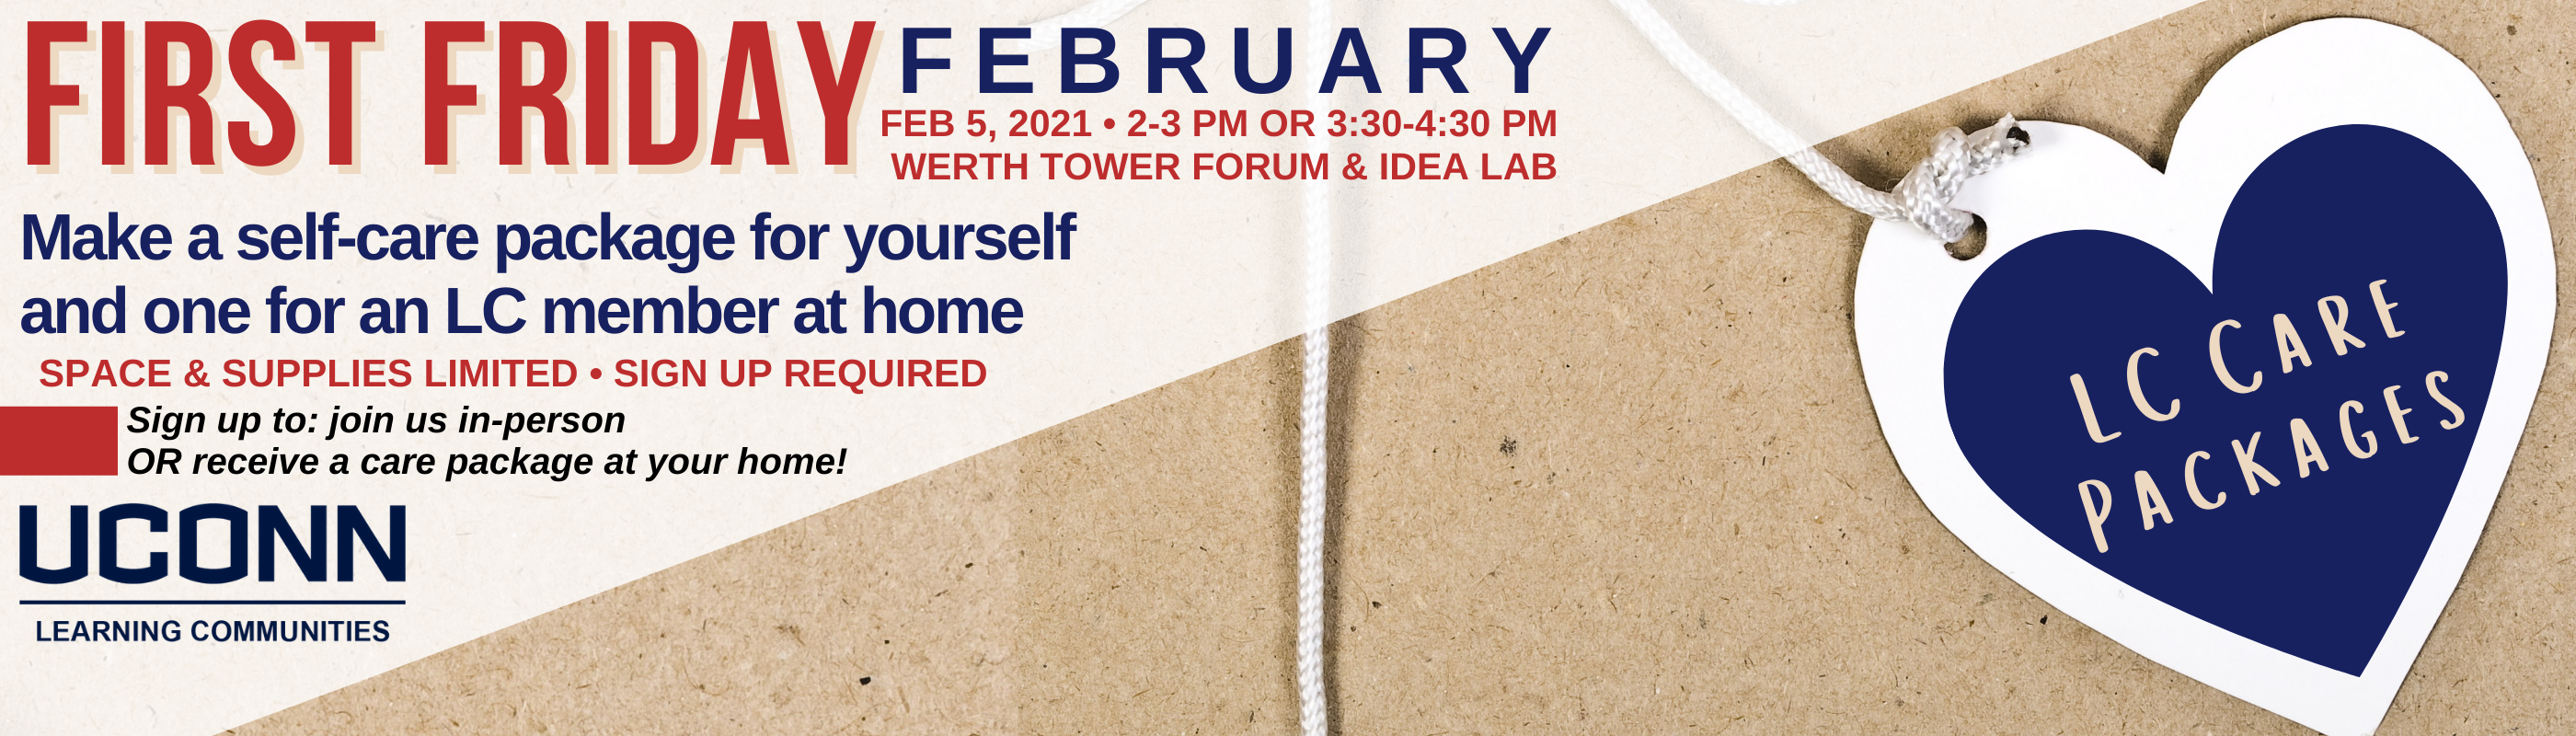 LC First Friday February 5 2-3pm or 3:30-4:30pm in the Forum and Idea Lab